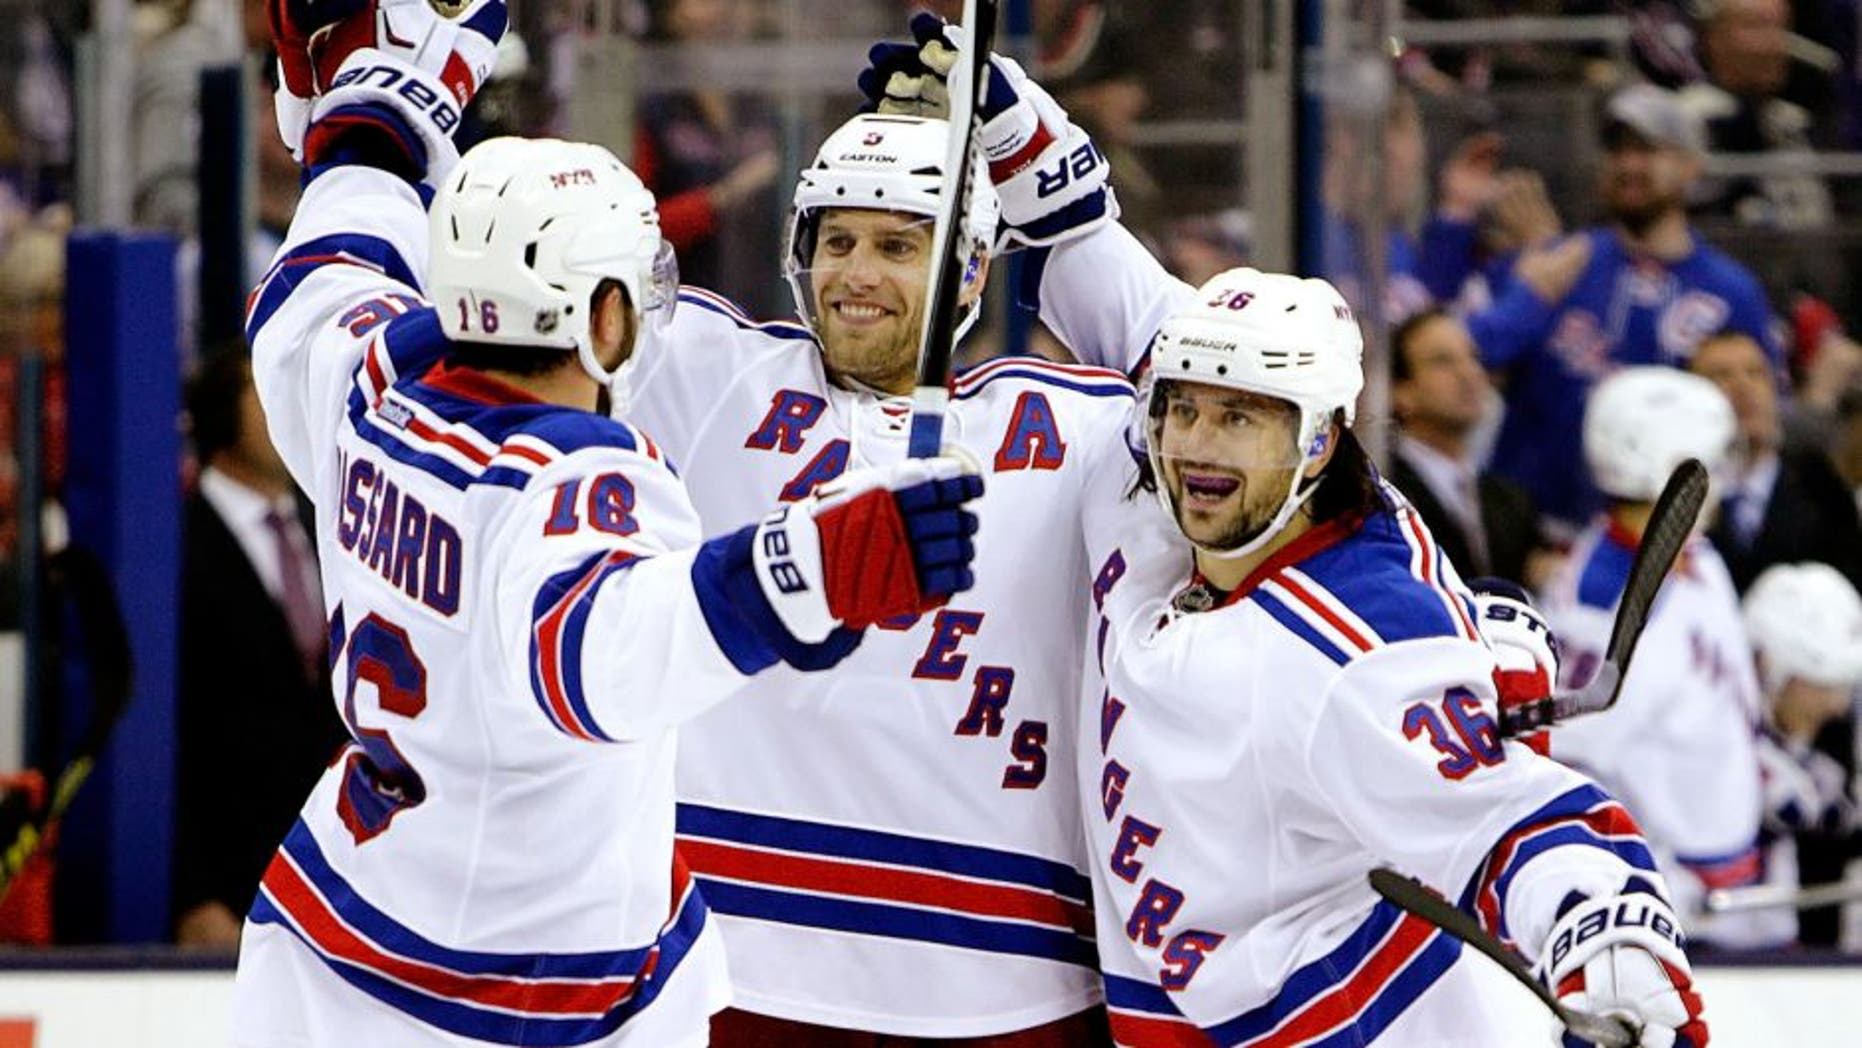 New York Rangers' Mats Zuccarello, right, celebrates his goal against the Columbus Blue Jackets with teammates Derick Brassard, left, and Dan Girardi during the third period of an NHL hockey game Friday, Oct. 9, 2015, in Columbus, Ohio. The Rangers beat the Blue Jackets 4-2. (AP Photo/Jay LaPrete)